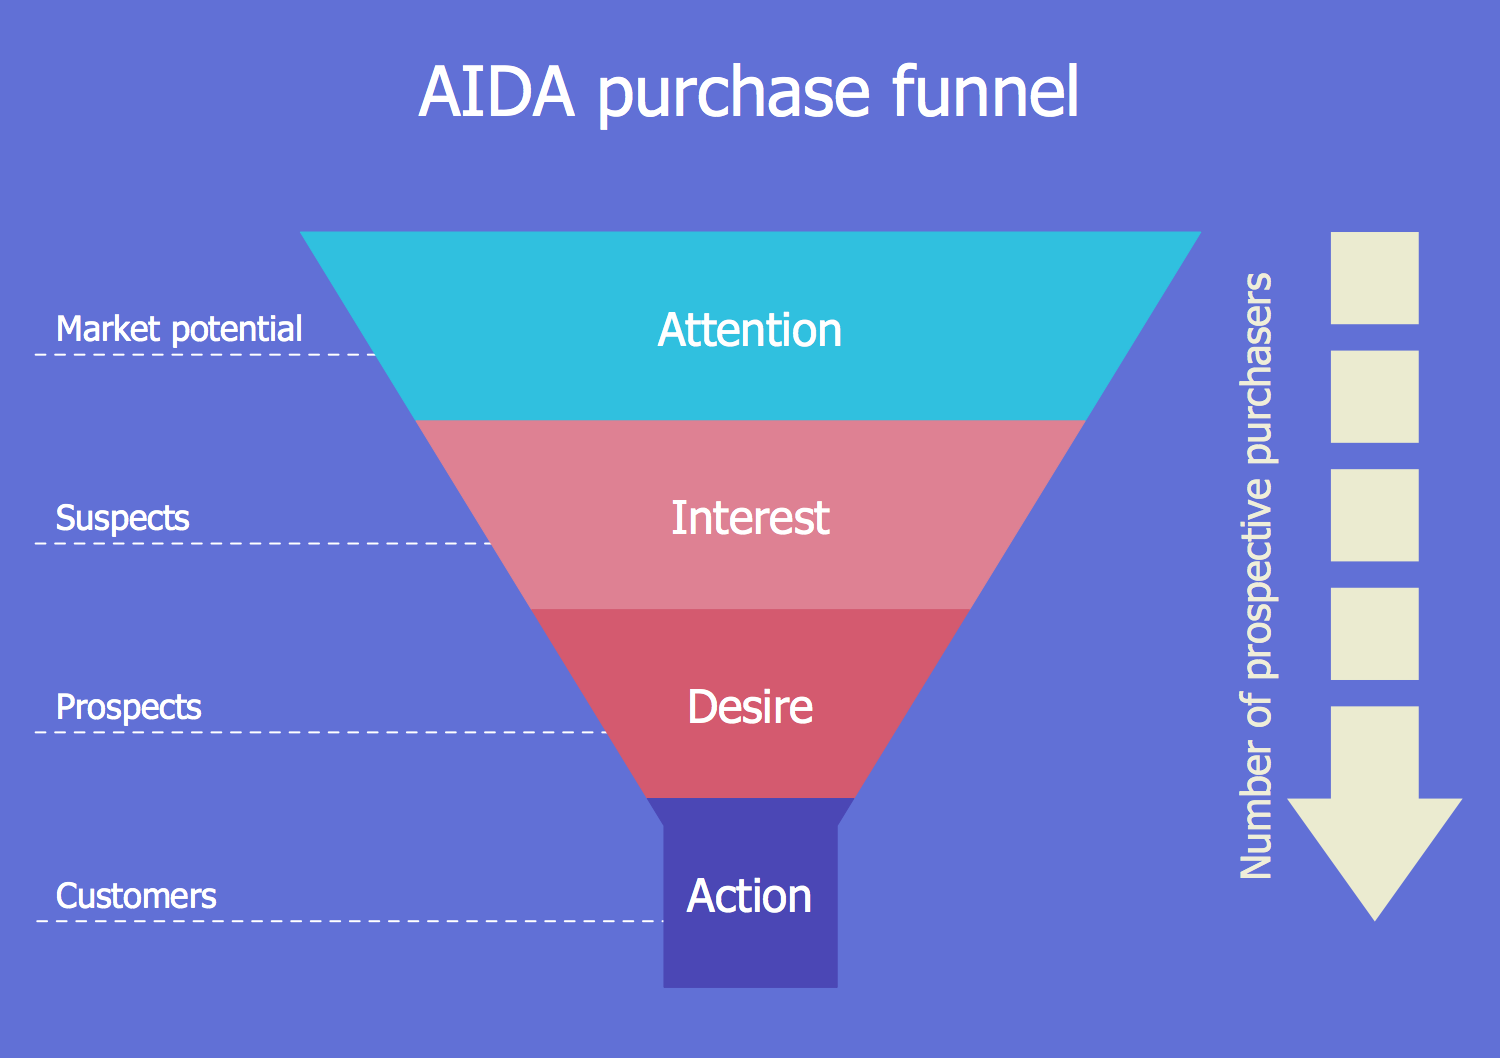 AIDA Purchase Funnel